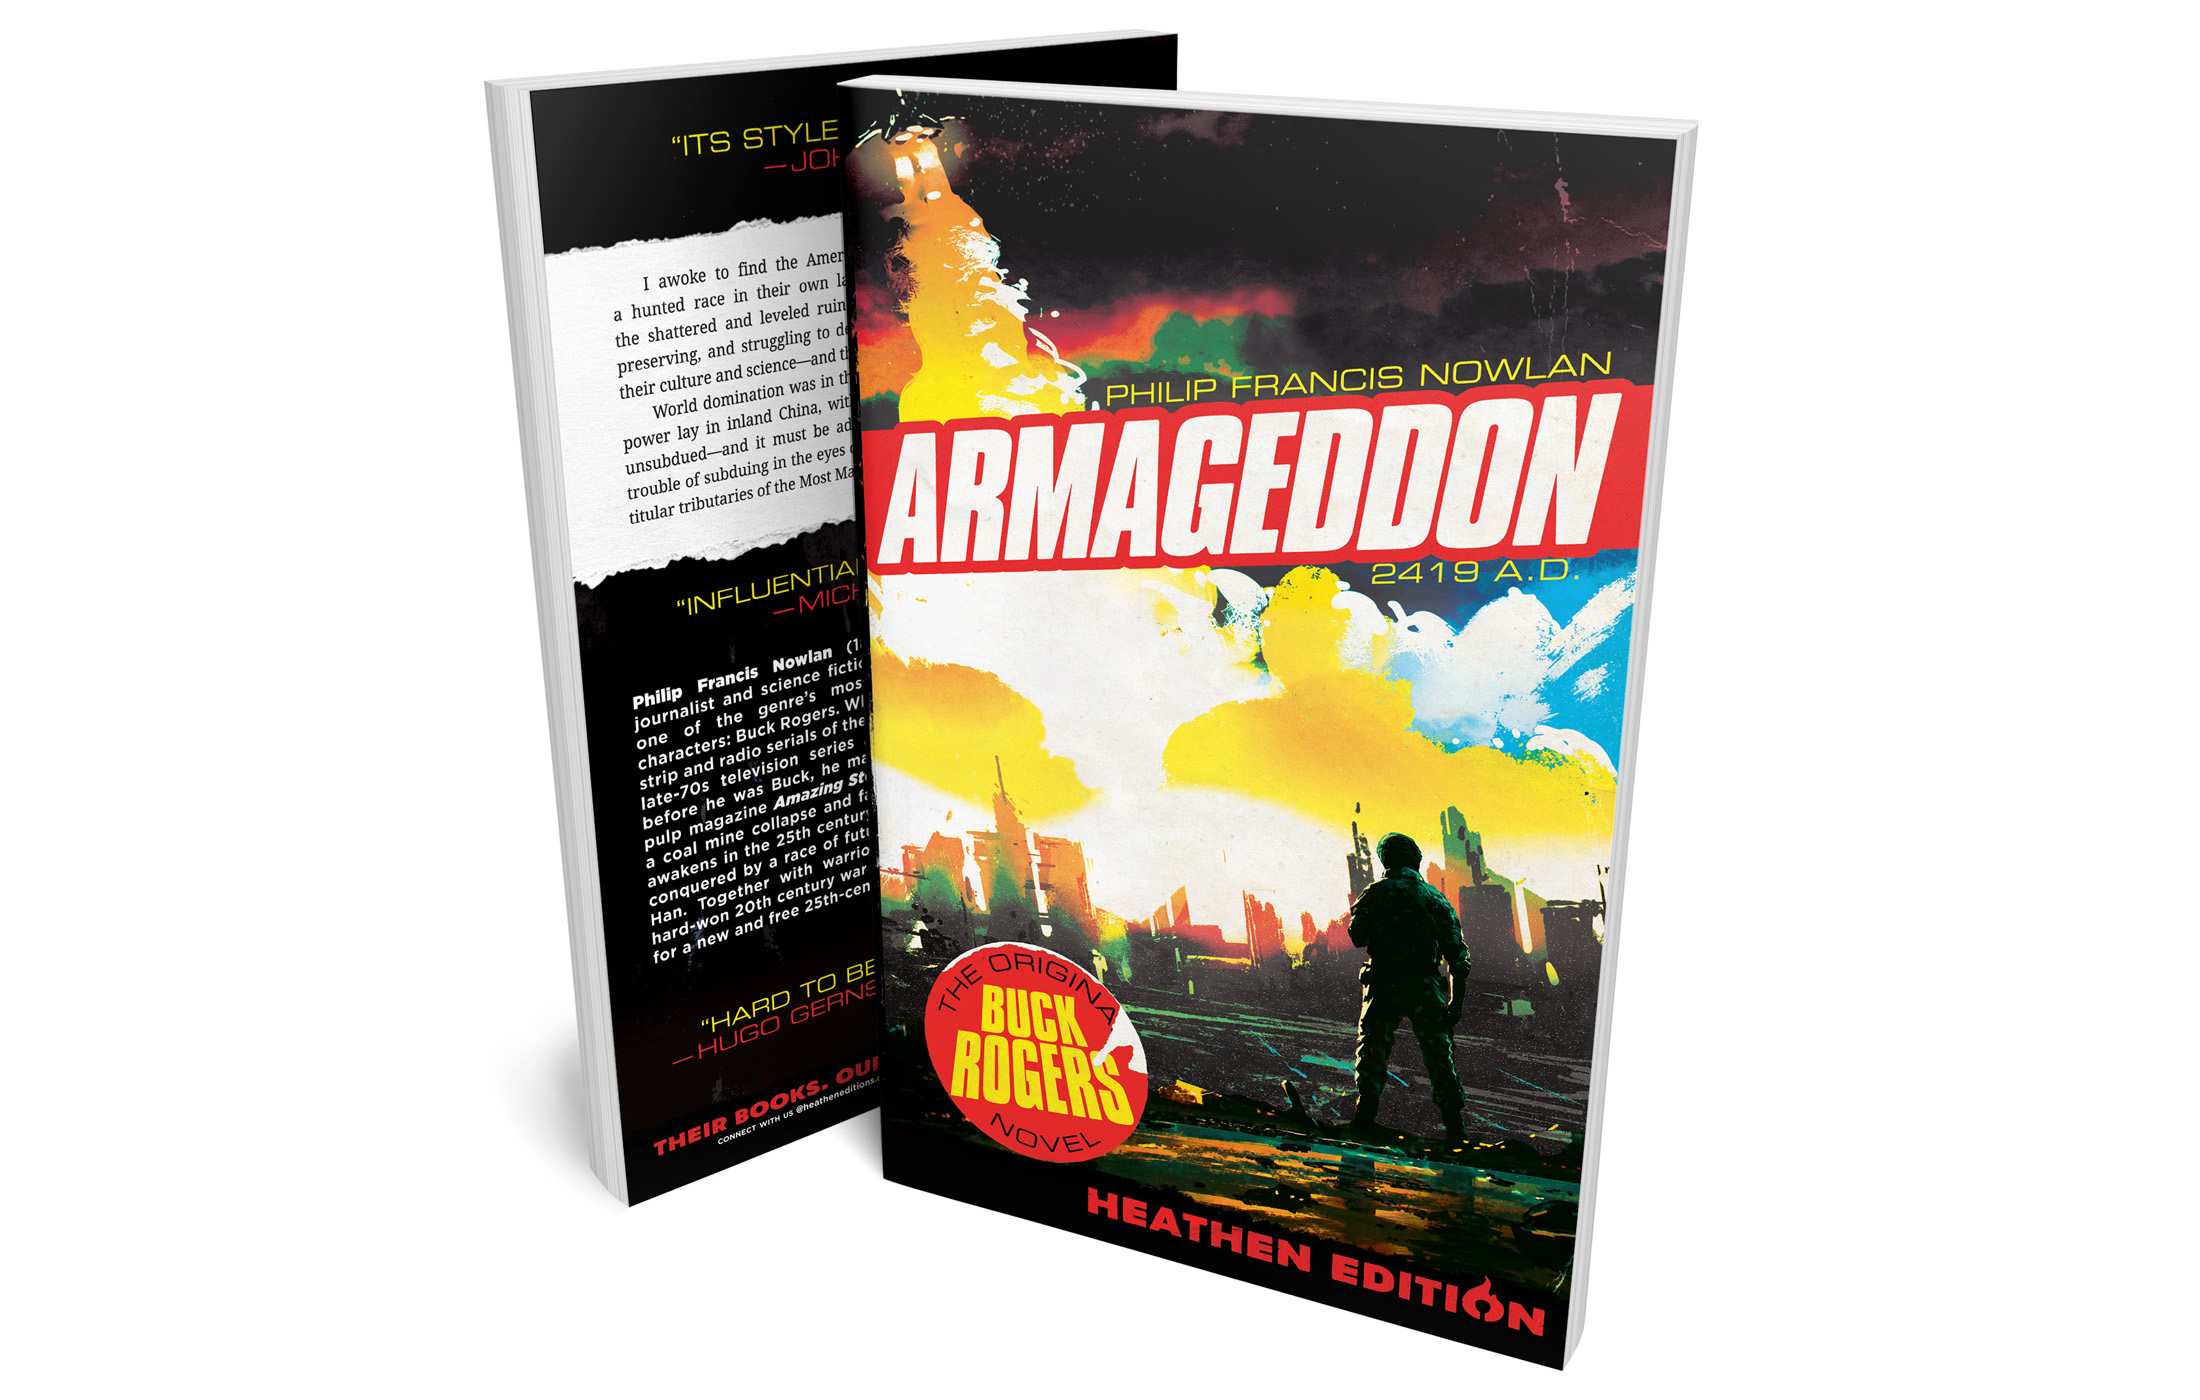 Armageddon 2419 A.D. by Philip Francis Nowlan (Heathen Edition)